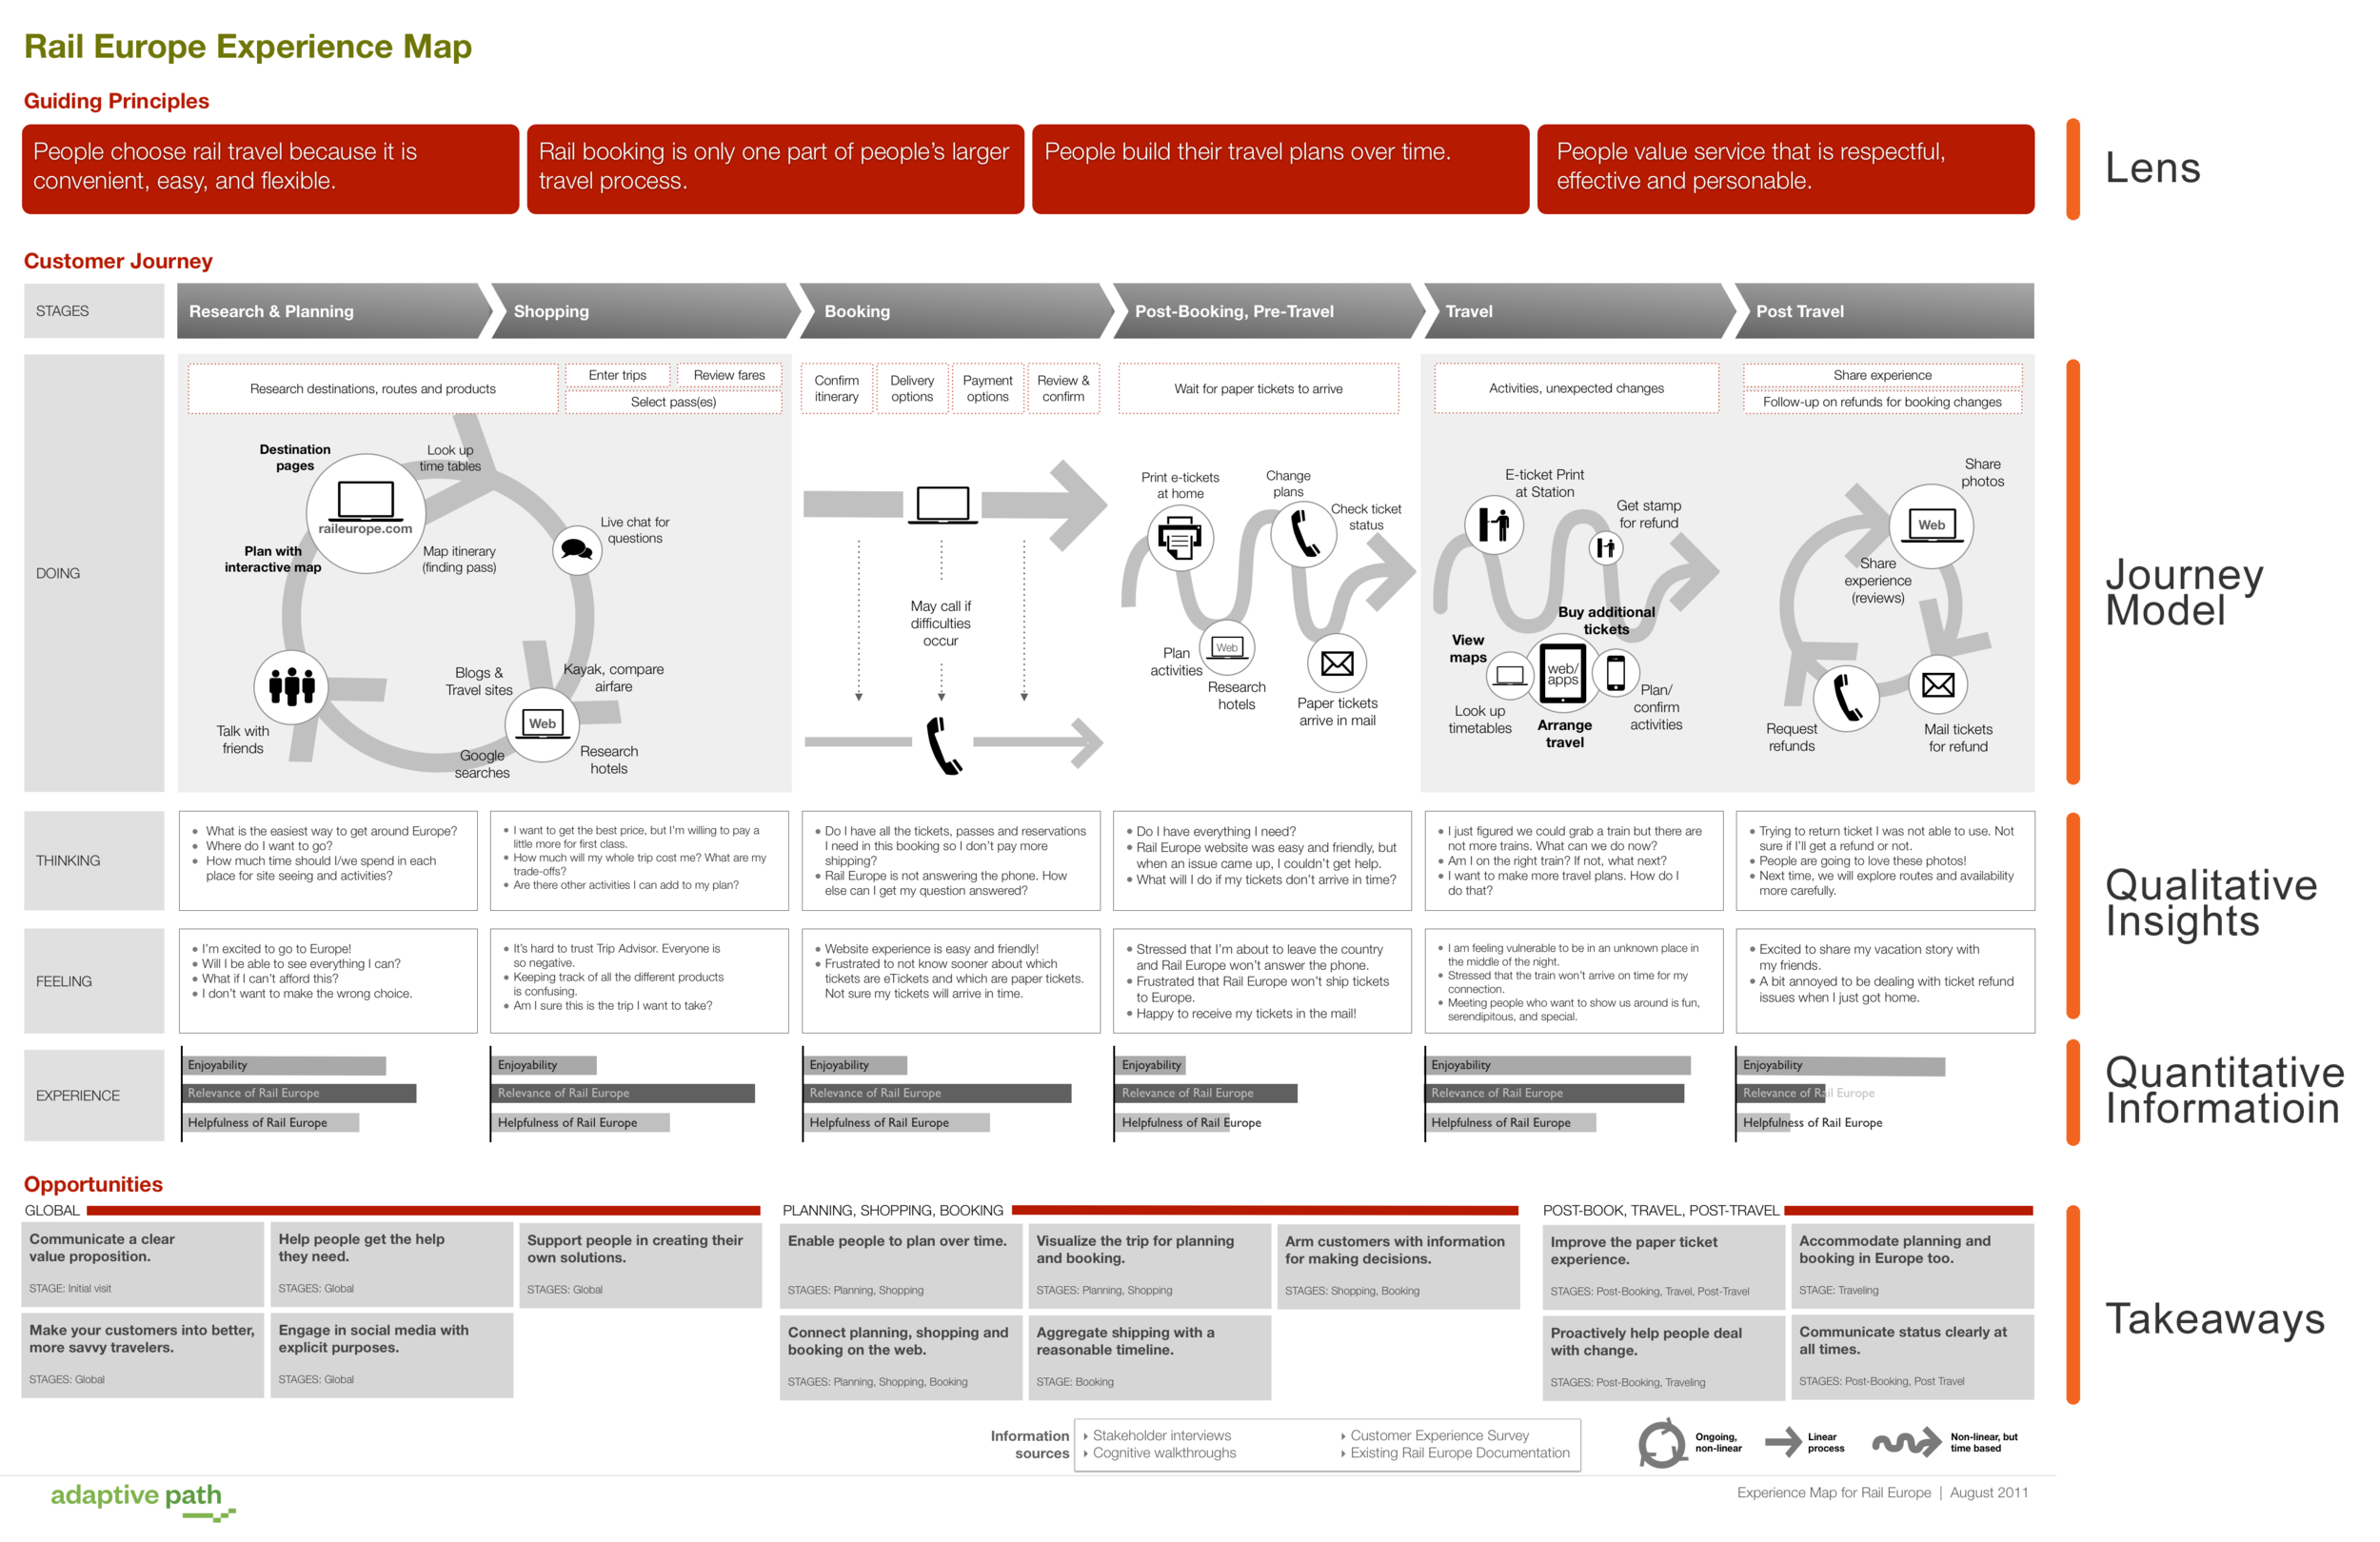 Adaptive Path, Experience Mapping